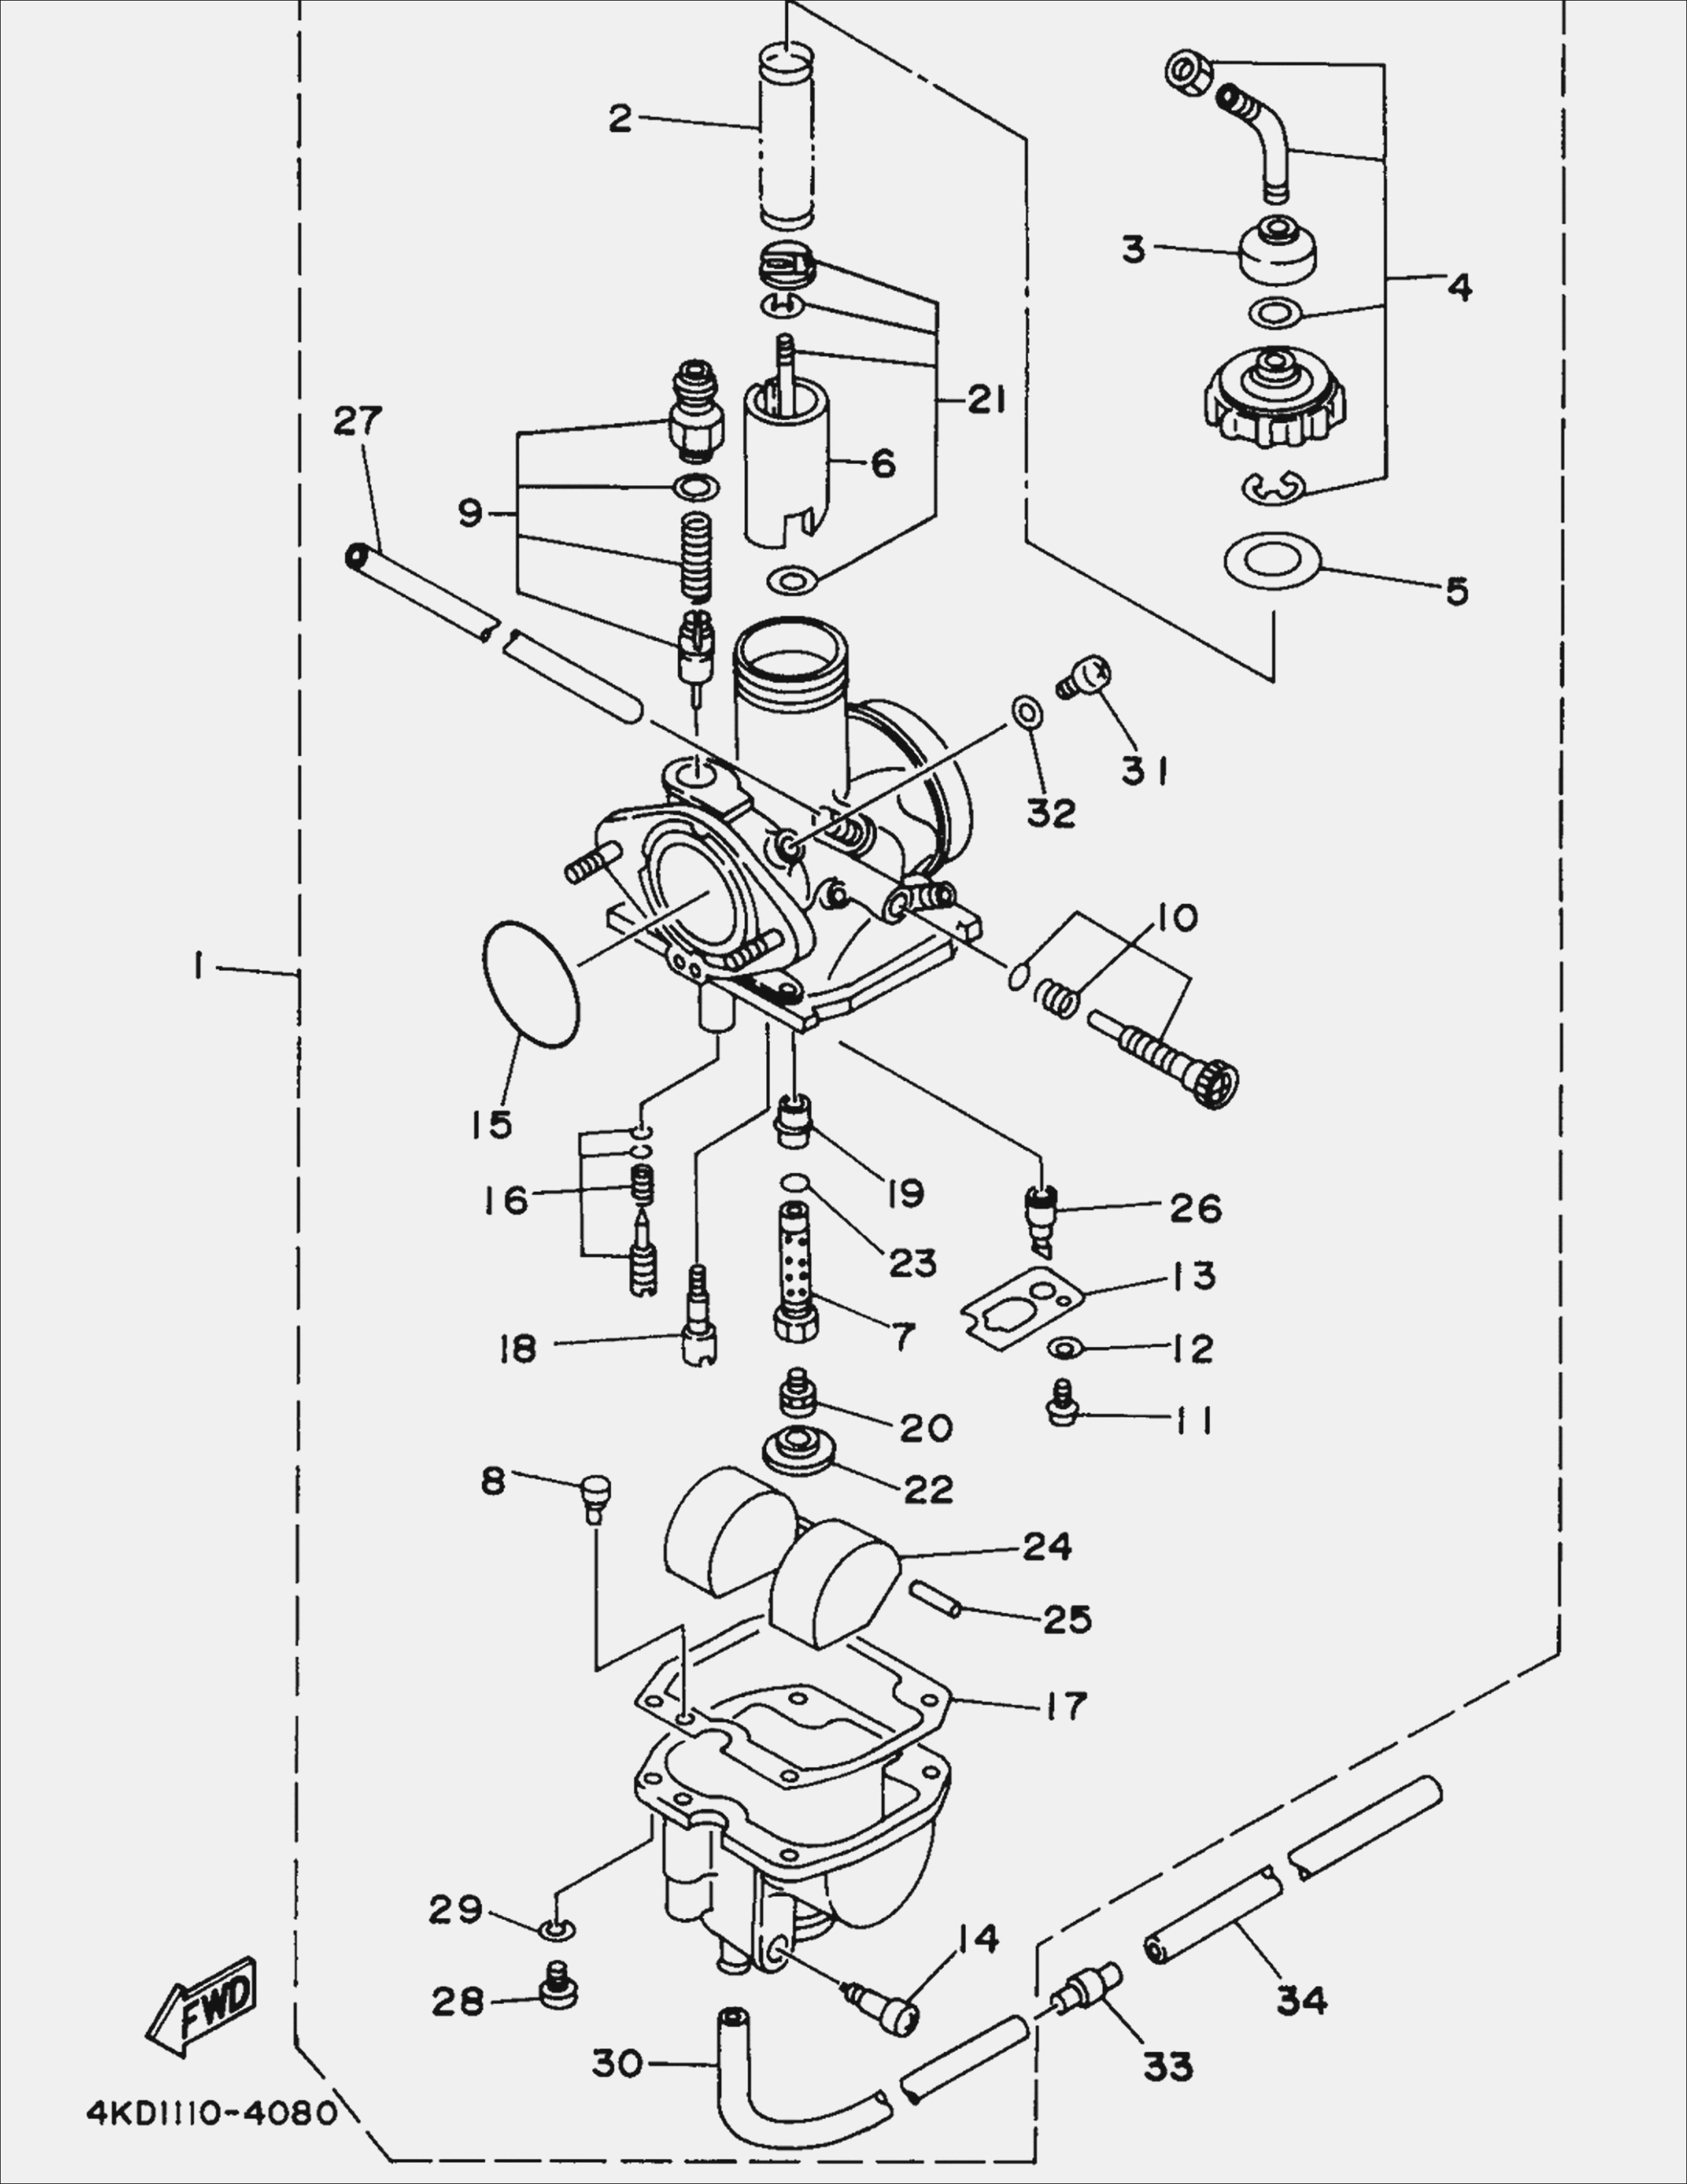 Wiring Diagram 2006 Jeep Commander | Wiring Diagram - Jeep Commander Trailer Wiring Diagram